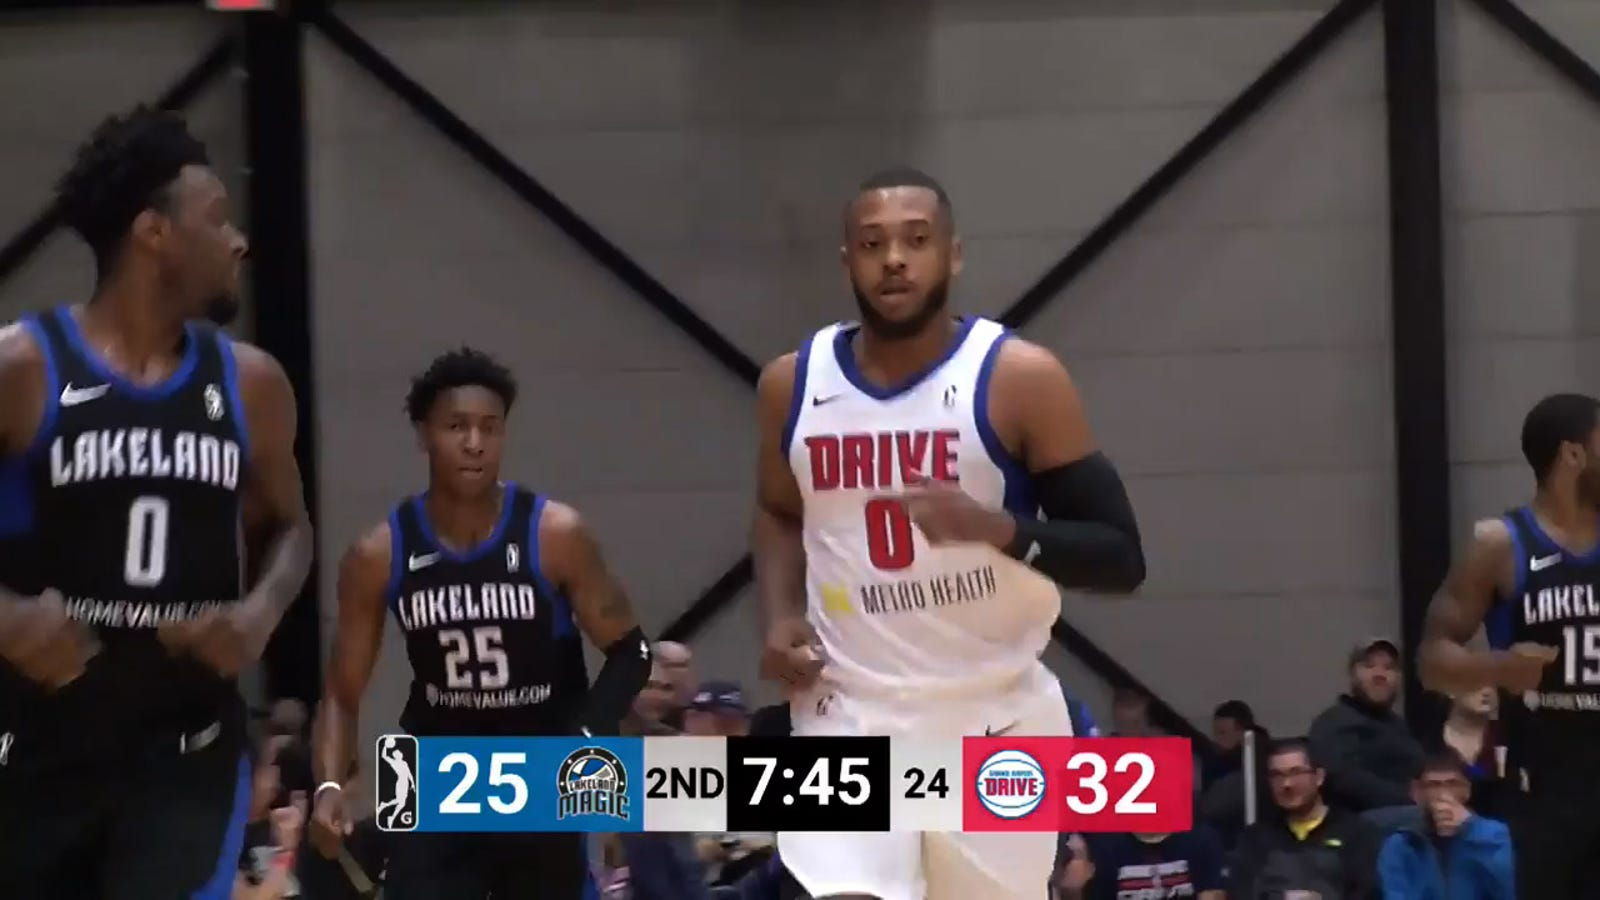 NBA D-League Player Zeke Upshaw Dies After Collapsing On Court